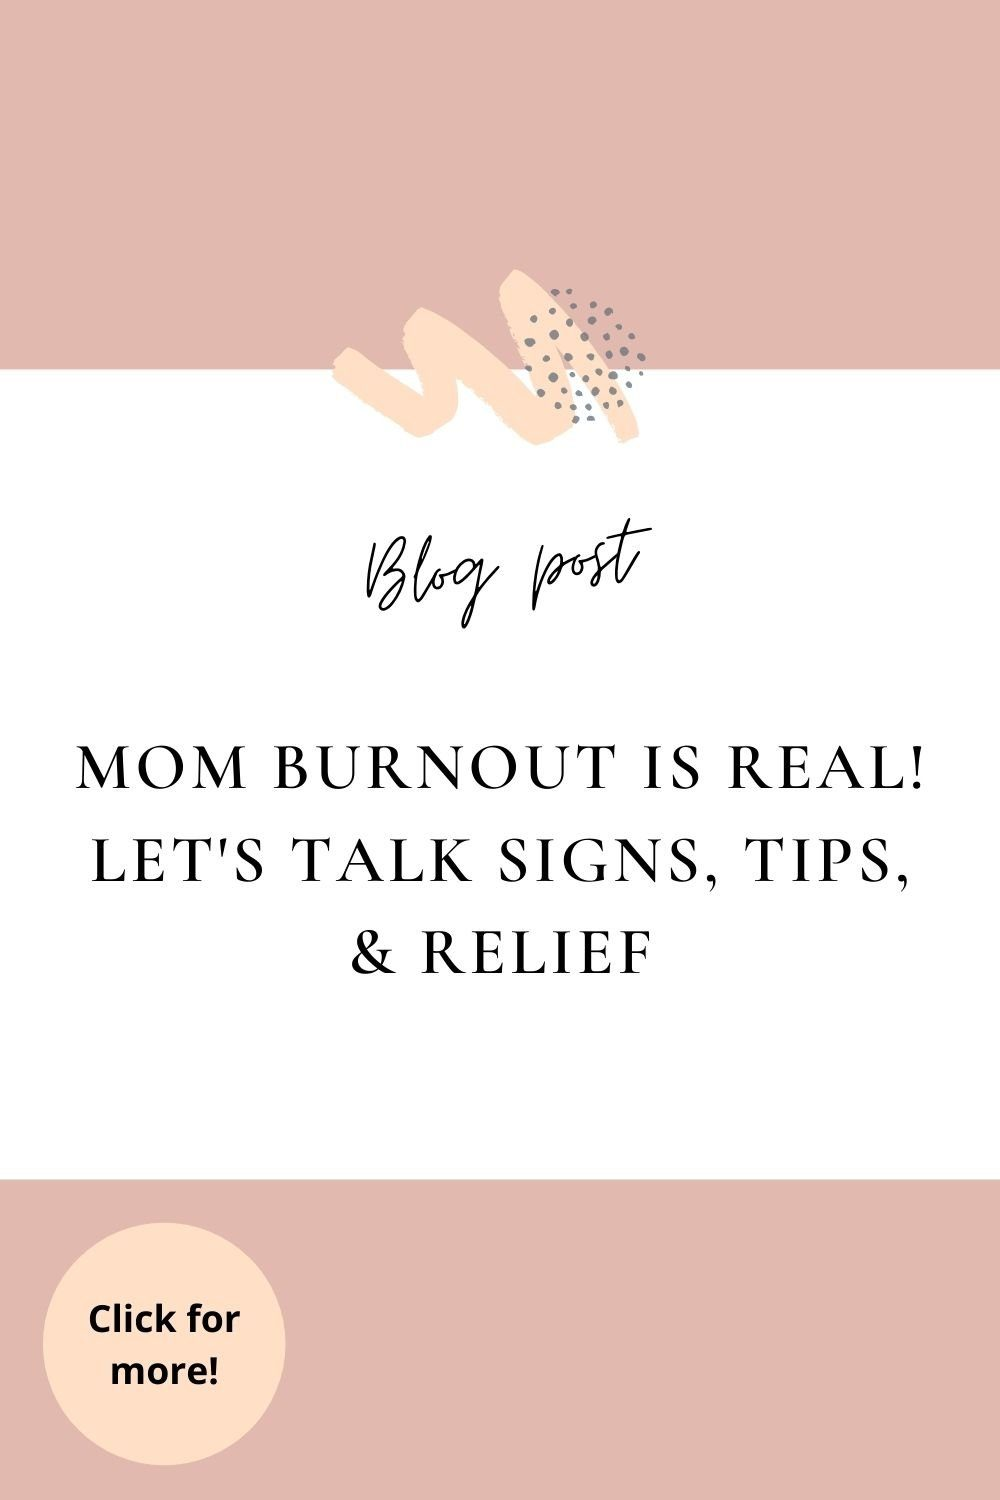 mom burnout is real, sign tips and strategies